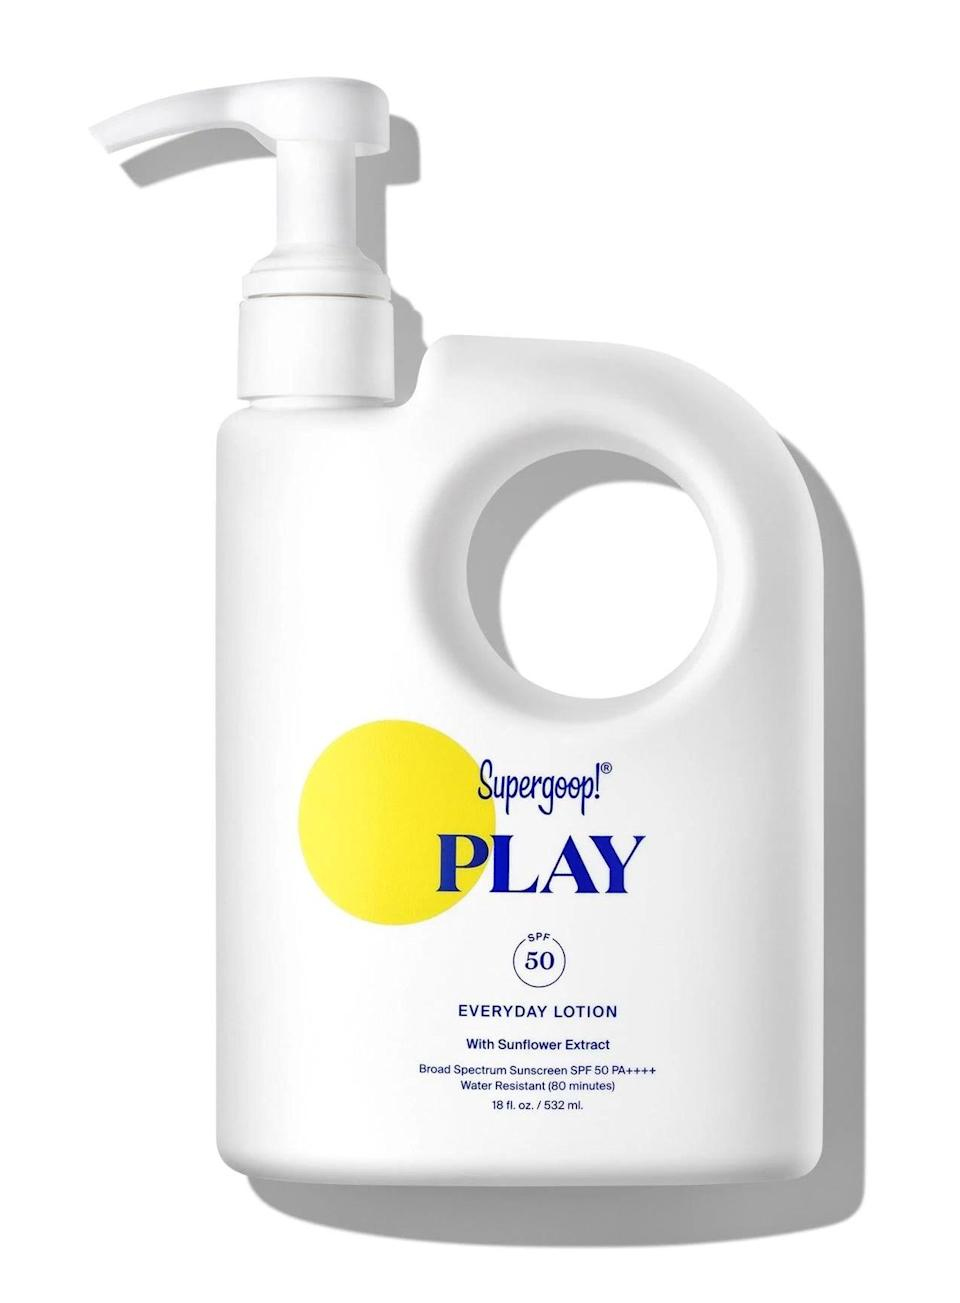 <p><span>Supergoop! Play Everyday Lotion SPF 50 with Sunflower Extract</span> ($58) is a clean formula that's both water and sweat resistant. It prevents dehydration of the skin while serving as a high-preforming sun protectant.</p>